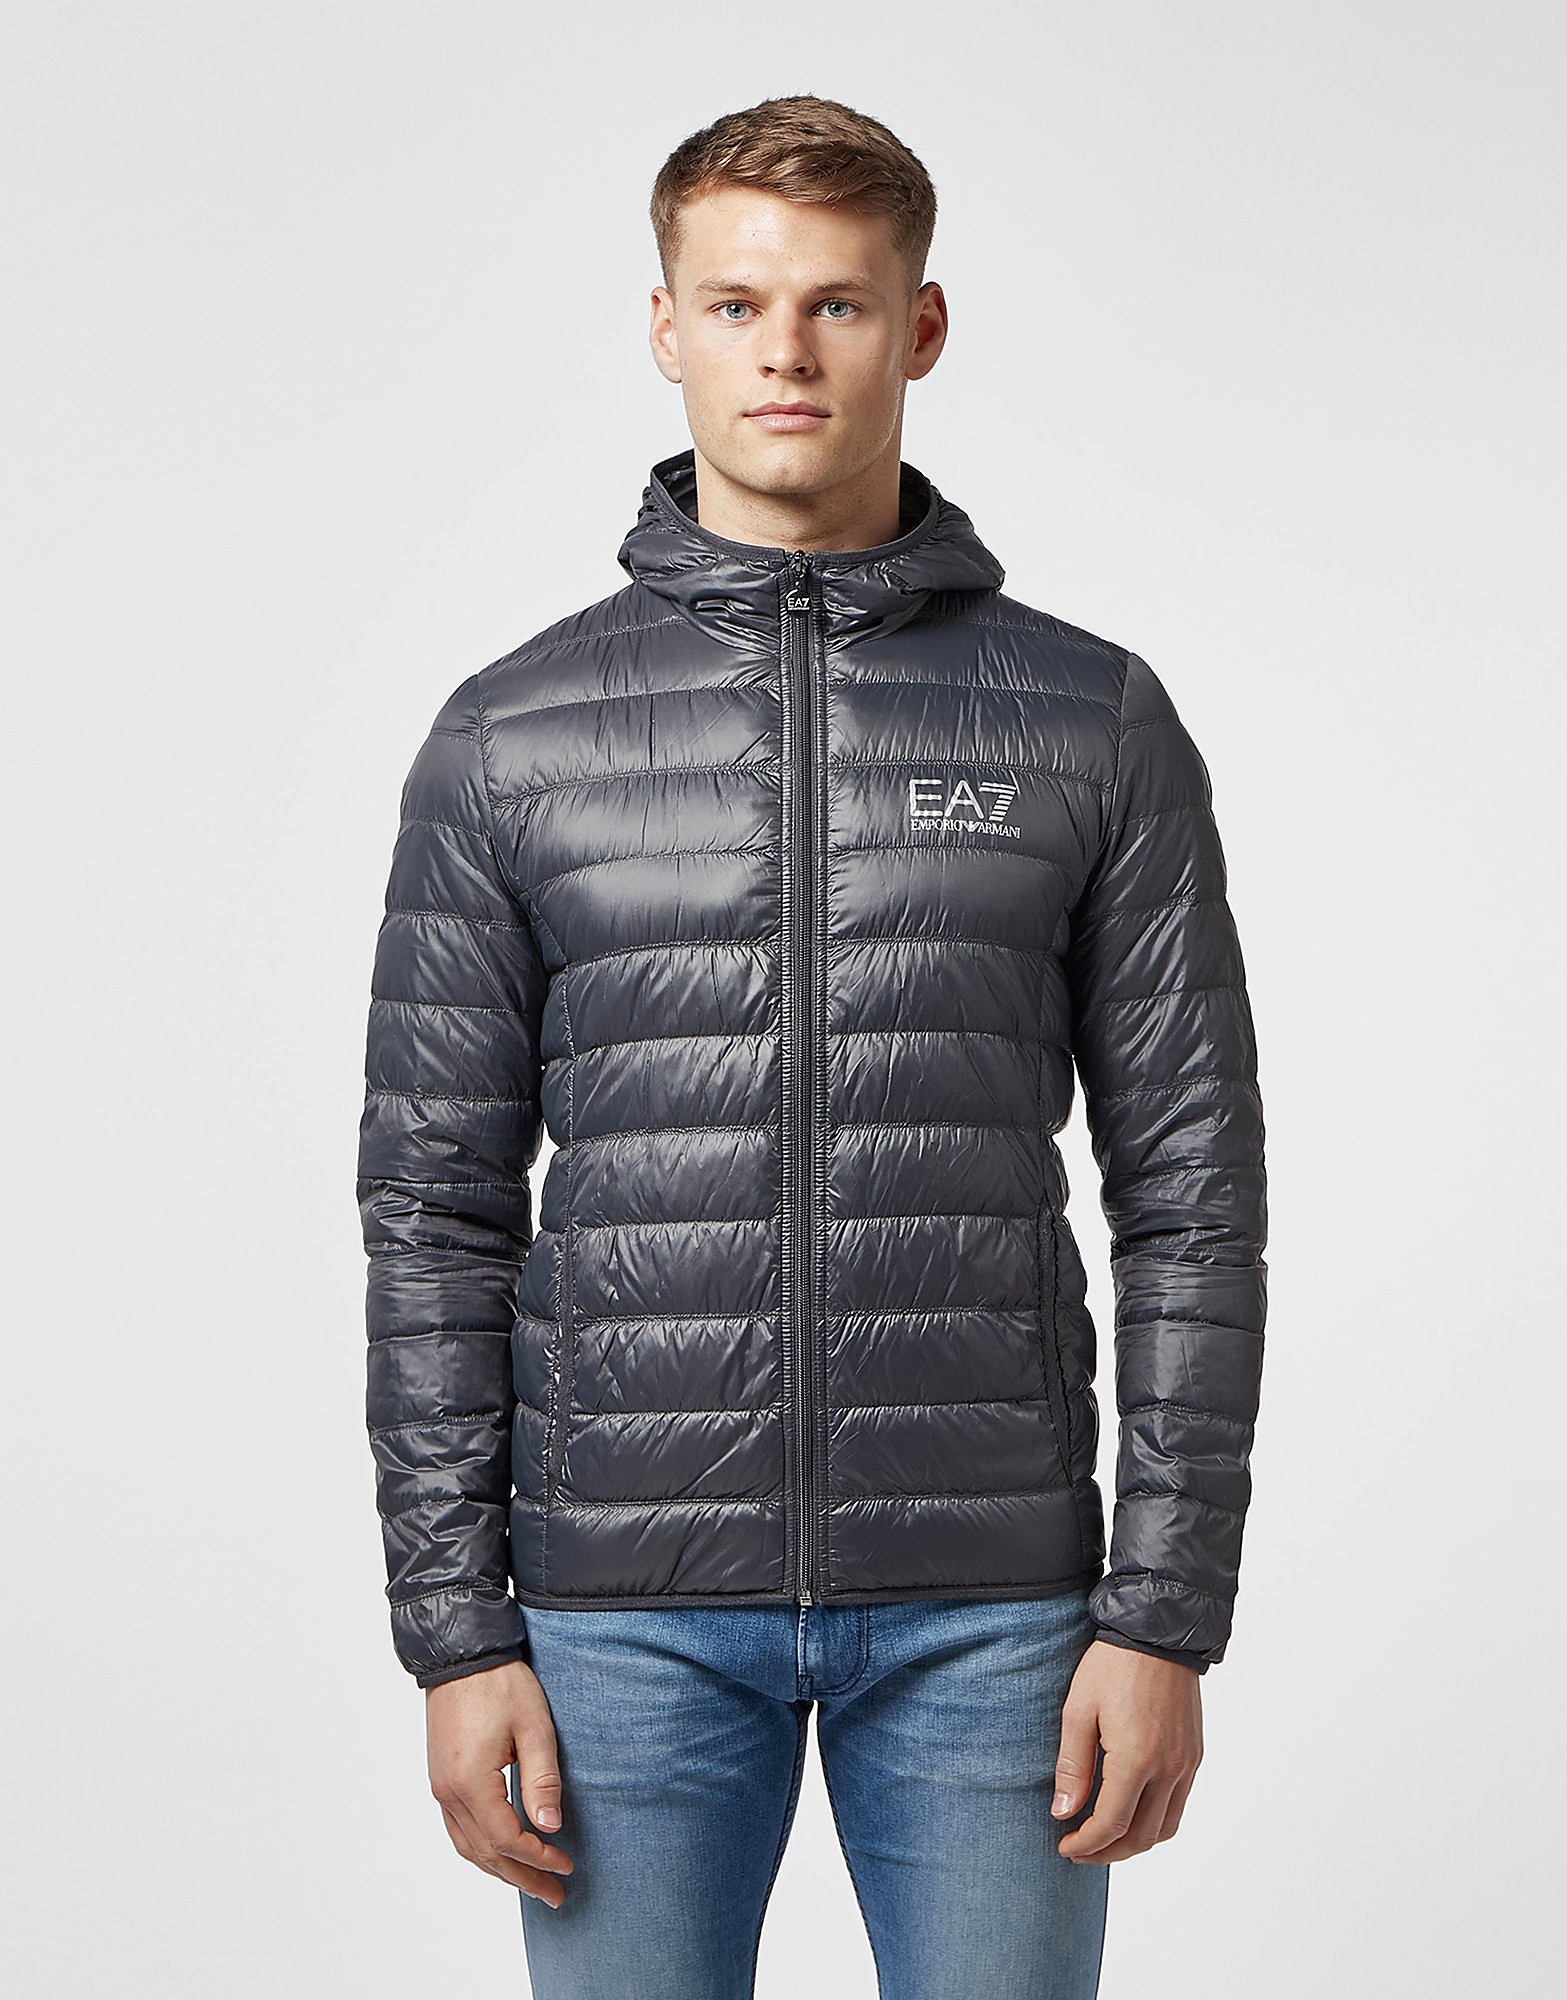 eaecfd777e6f Emporio Armani EA7 Core Bubble Jacket - Navy blue